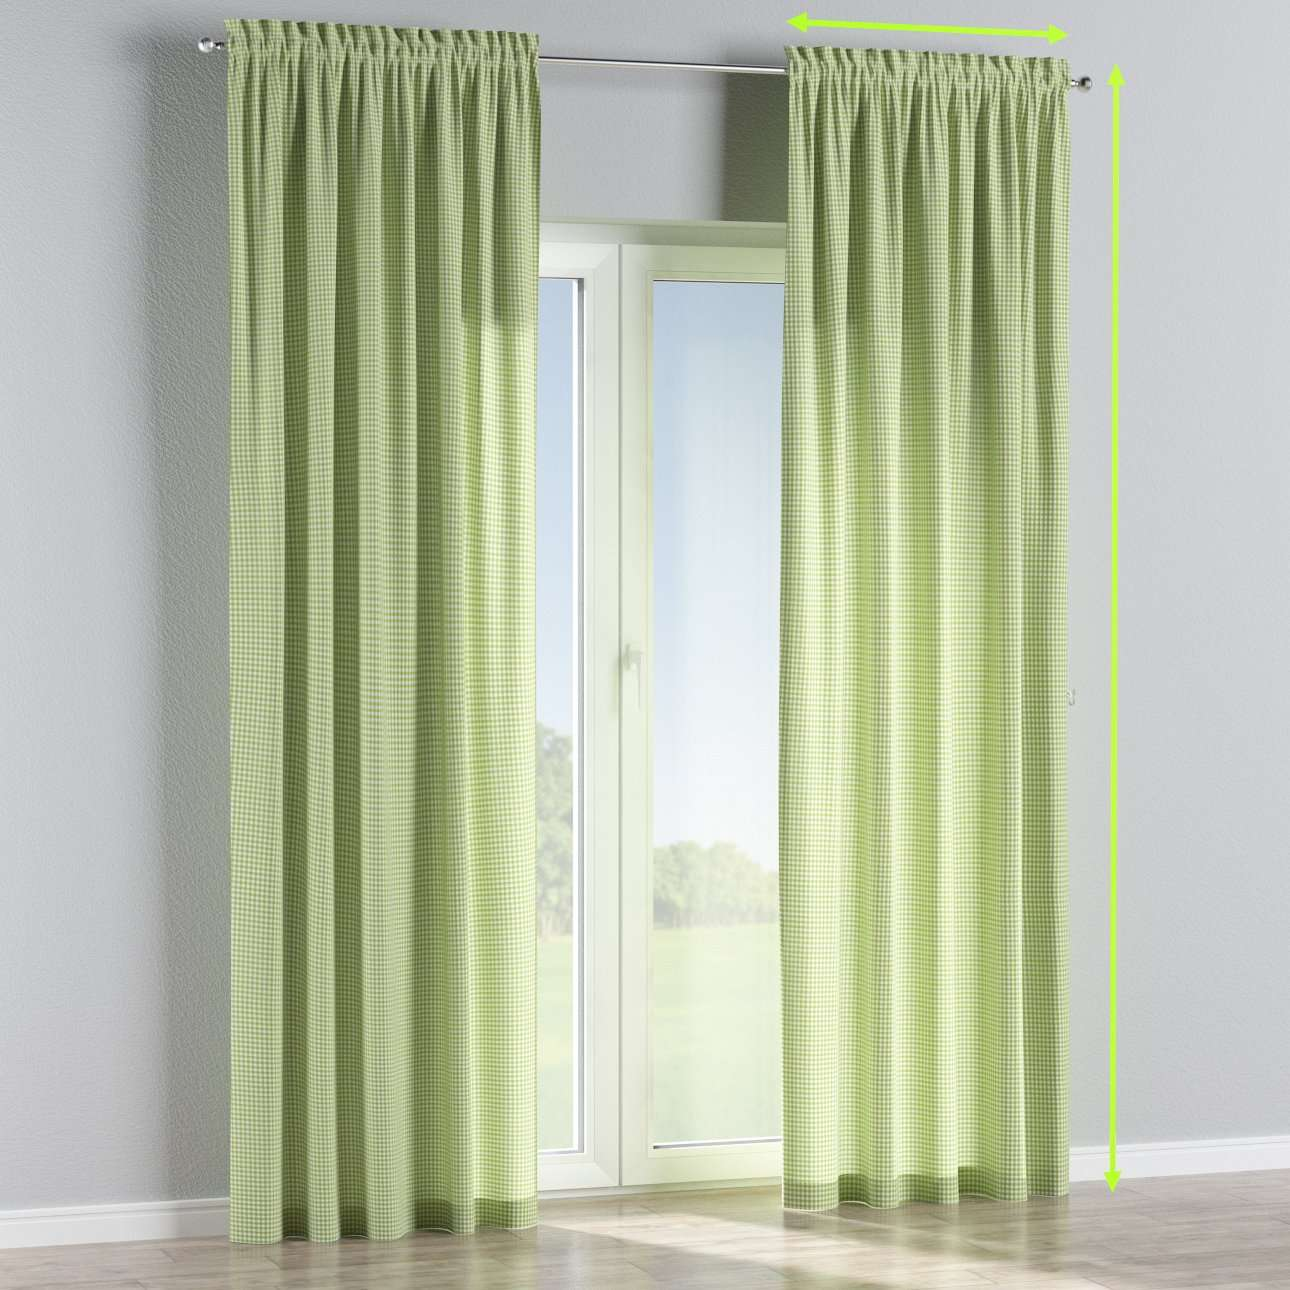 Slot and frill curtains in collection Quadro, fabric: 136-33